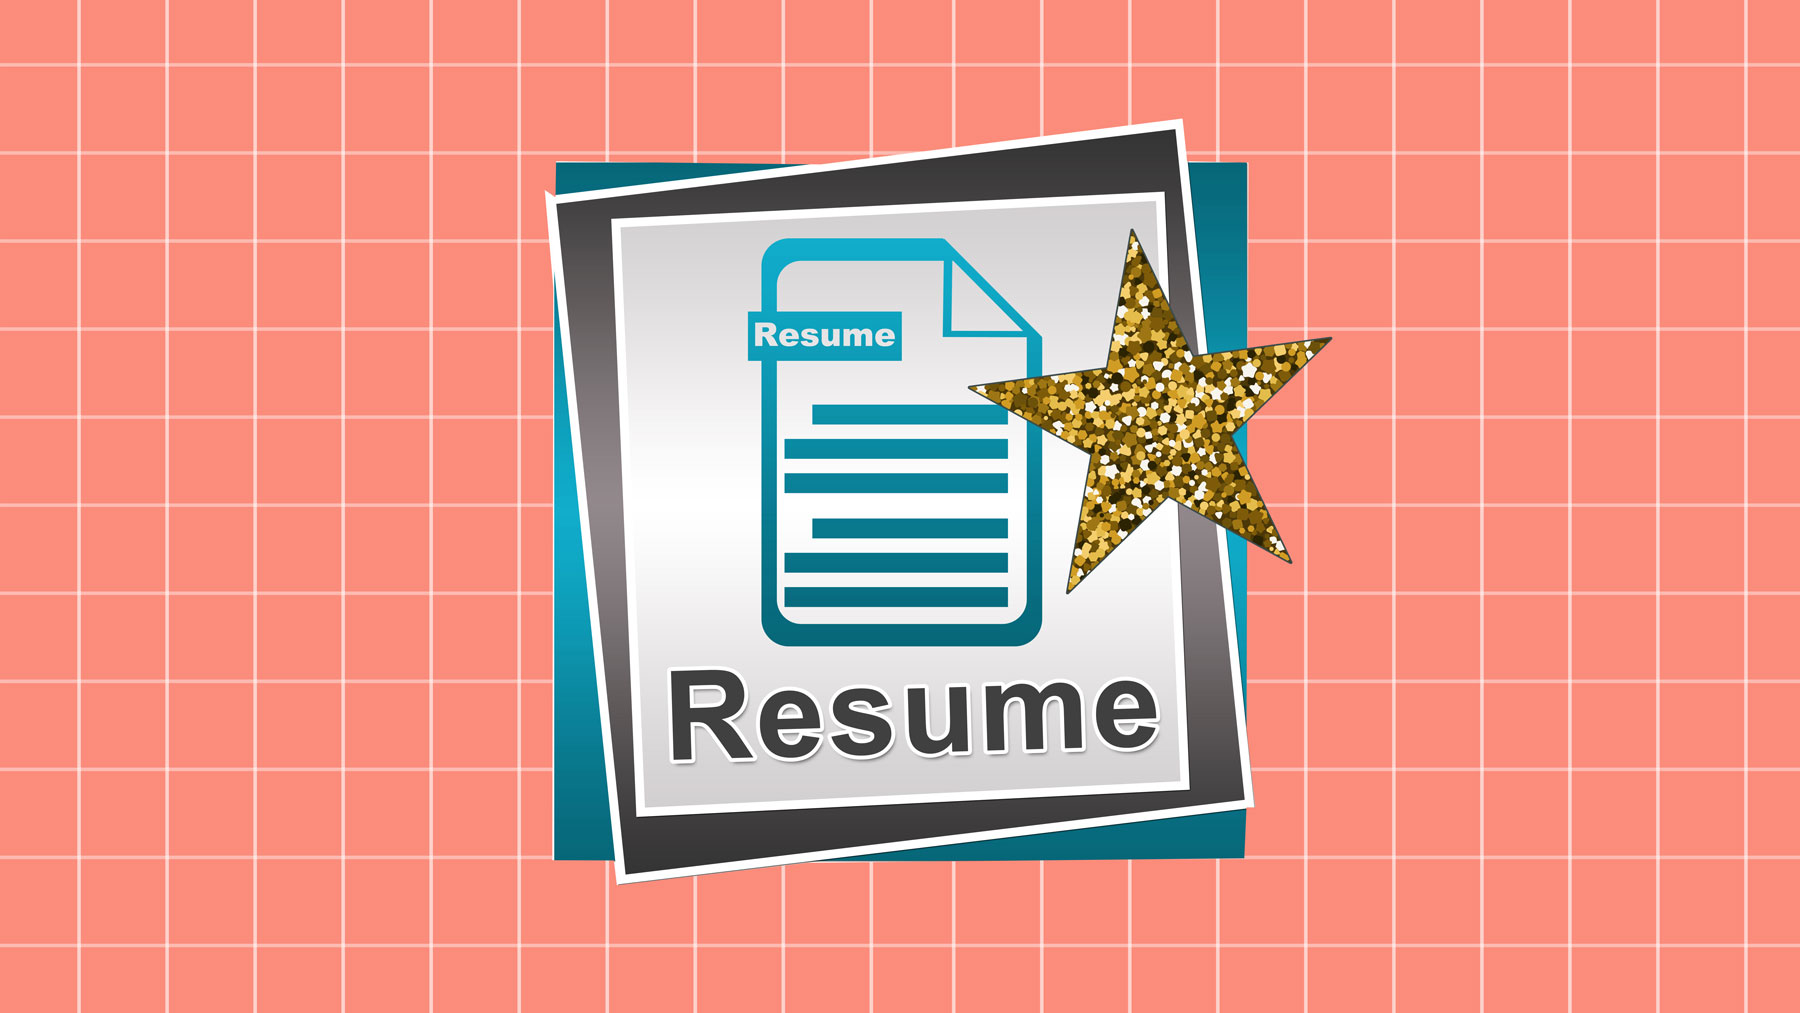 How to Write a Resume - resume writing tips to help you get hired